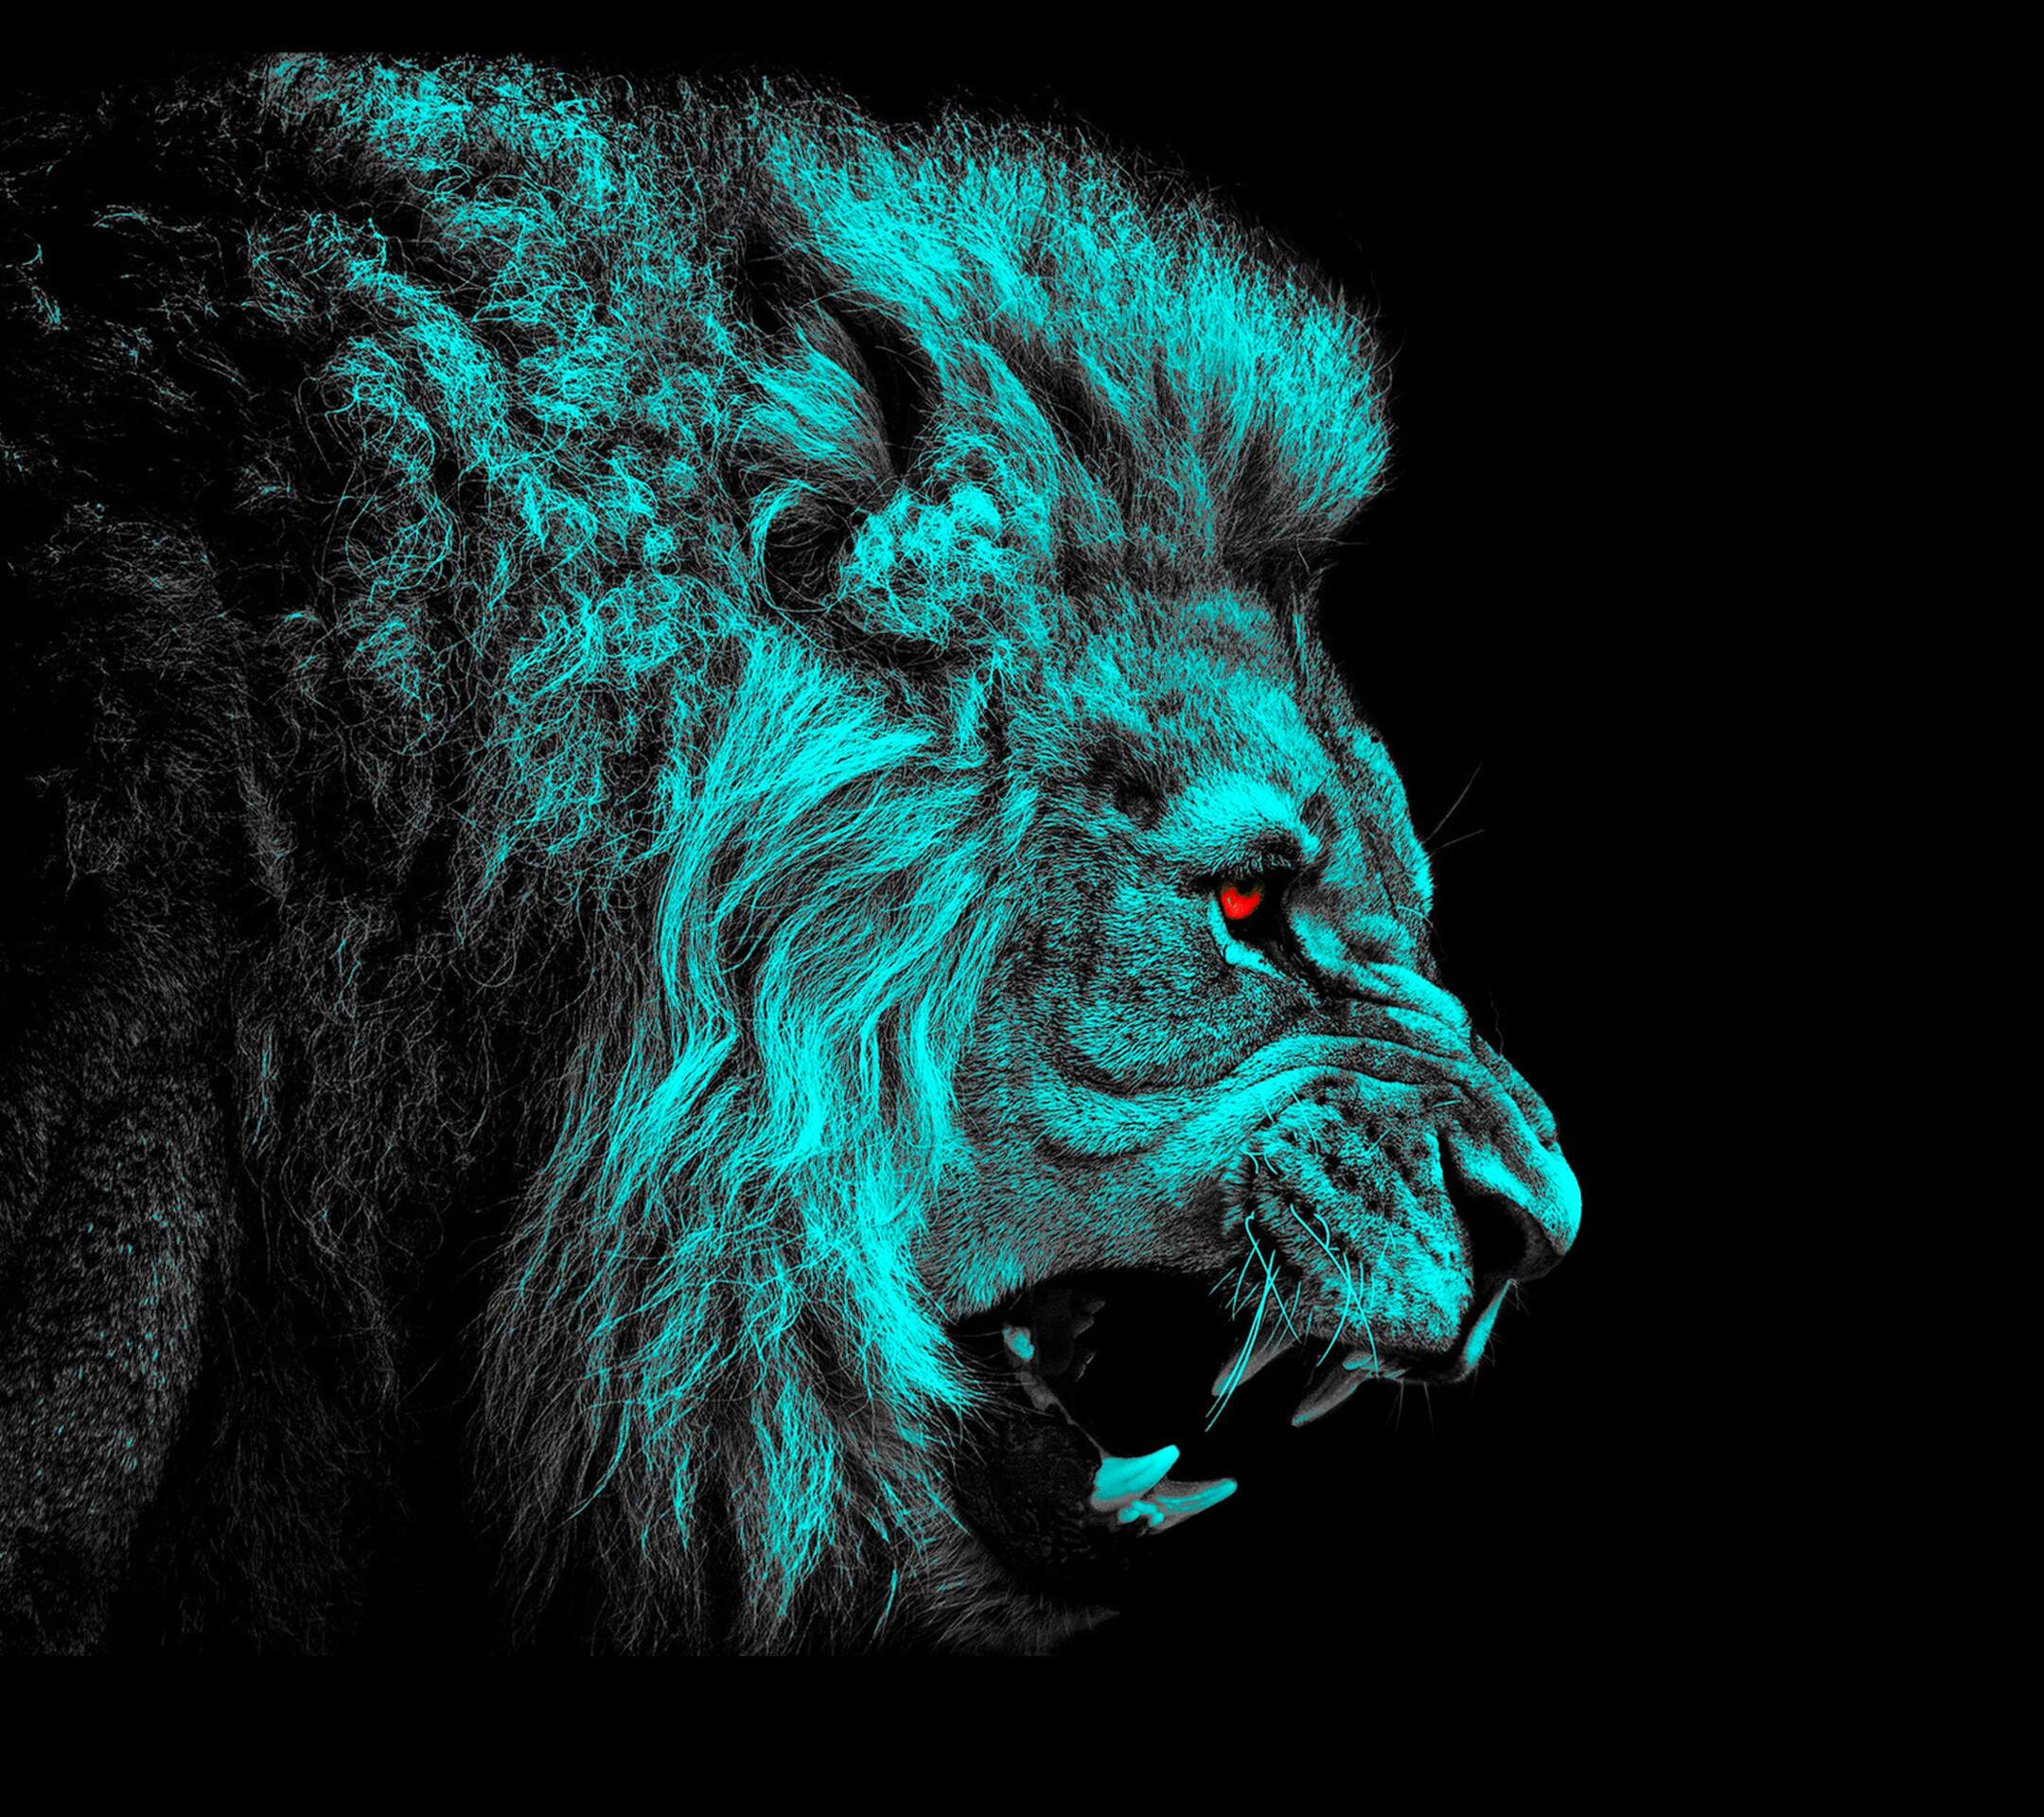 2160x1920 1228 Lion HD Wallpapers   Background Images - Wallpaper Abyss